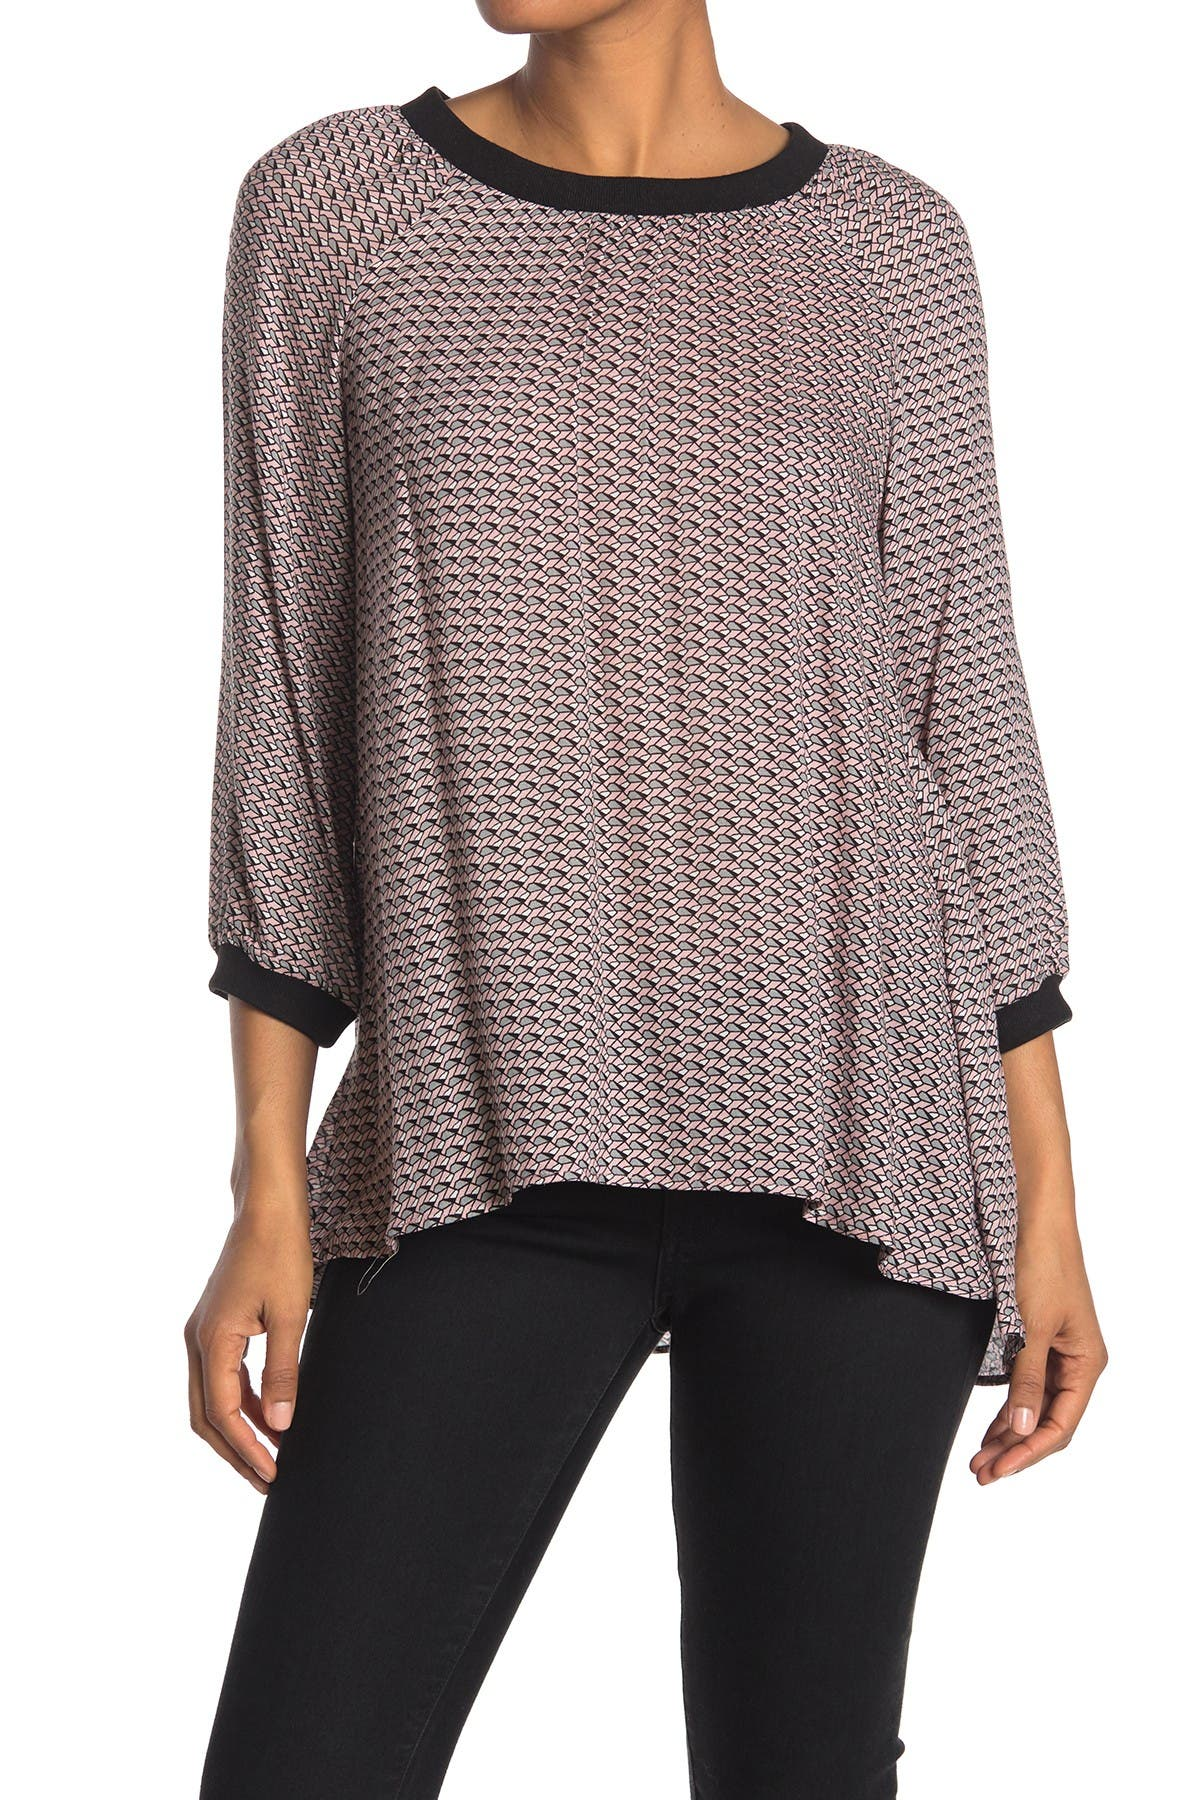 Image of DR2 by Daniel Rainn High Low Knit Tunic Top